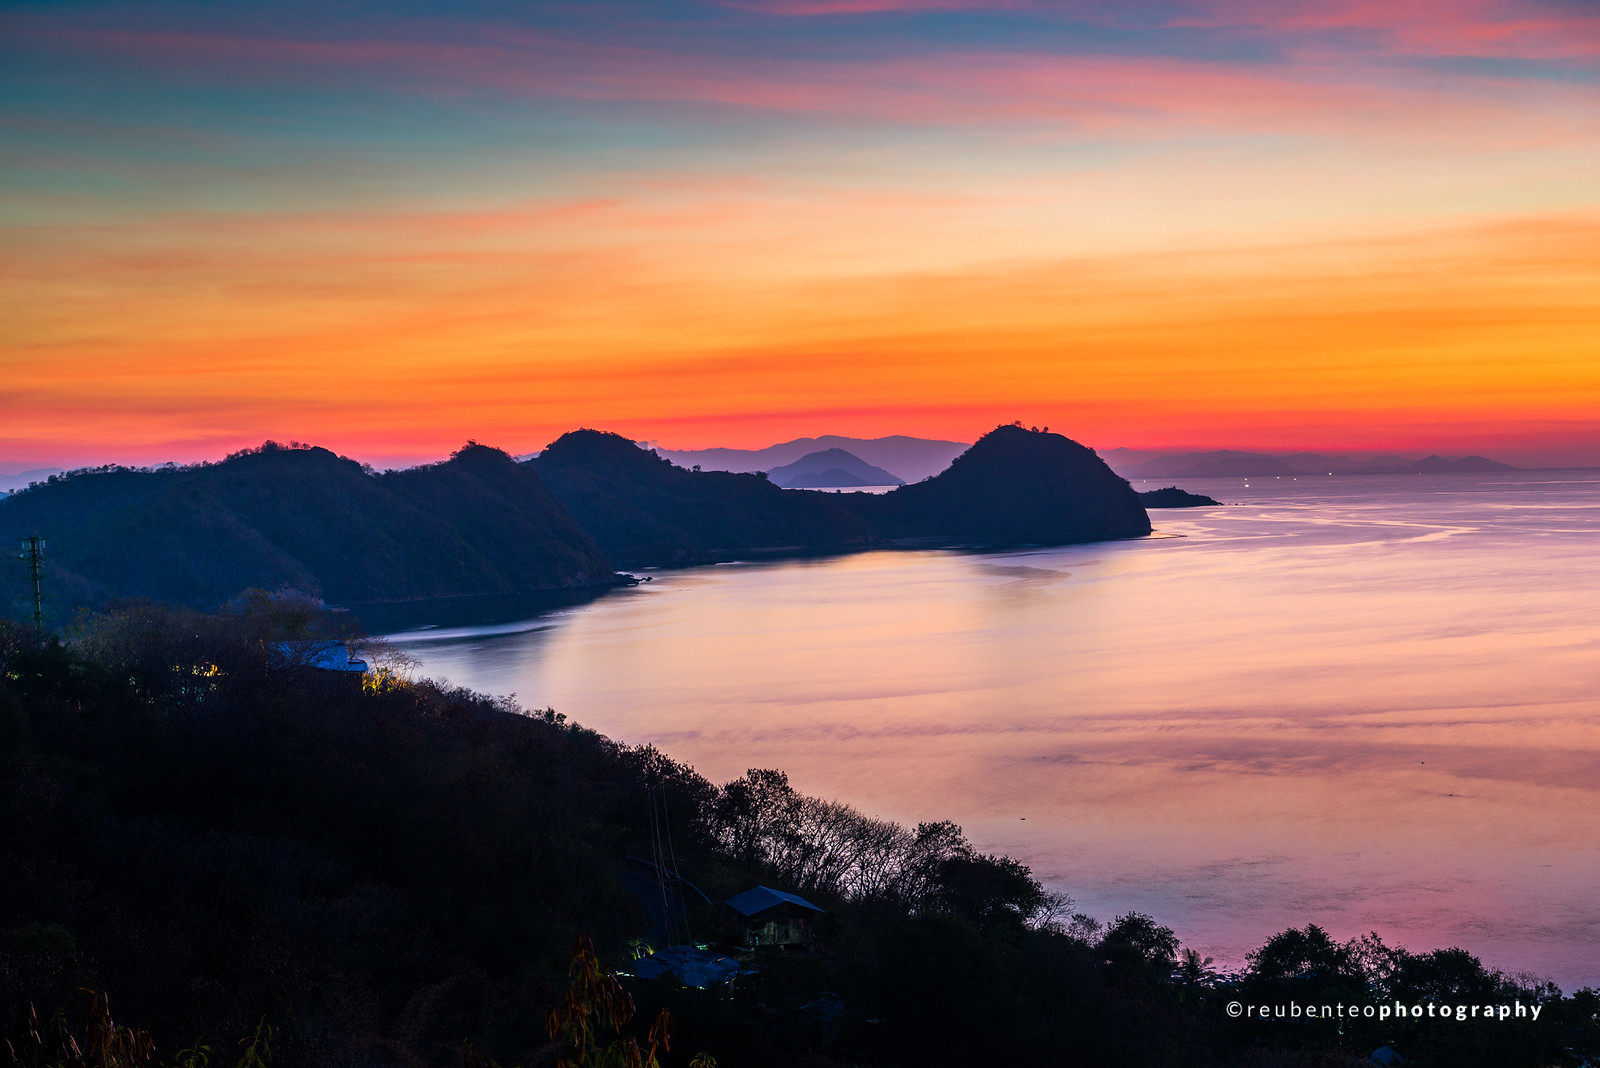 Labuan Bajo Sunset, Flores, Indonesia